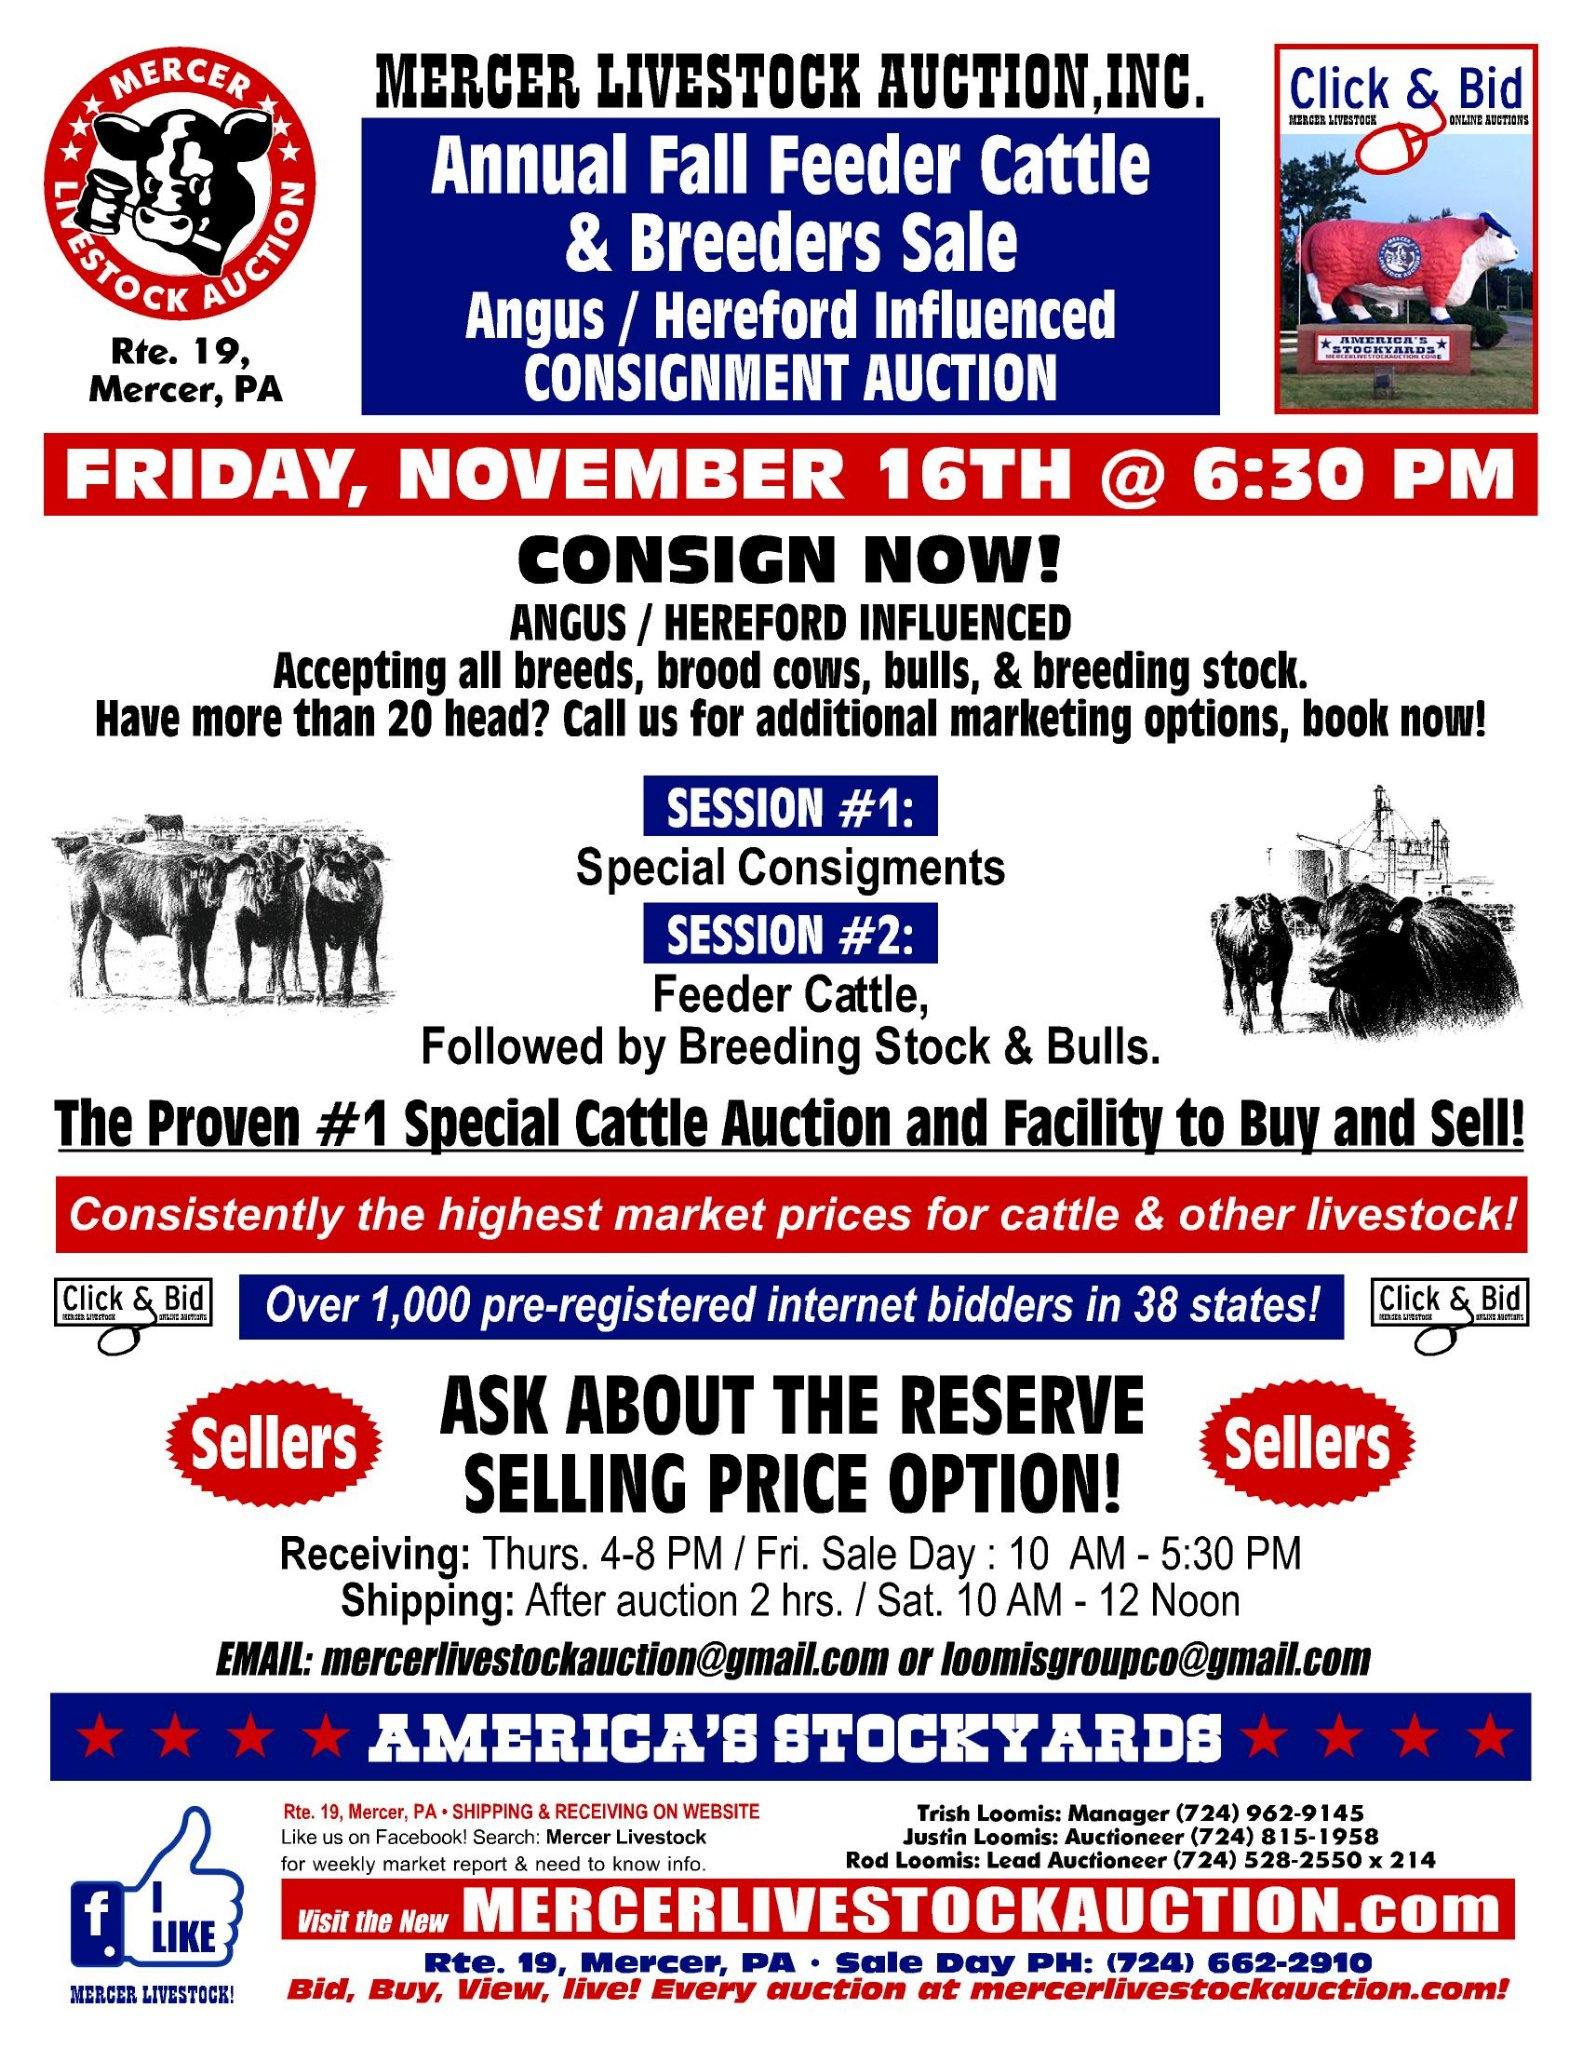 Mercer Livestock Auction Marketing Inc On Twitter Next Special Fall Feeder And Breeders Sale Friday November 16th 6 30 Pm